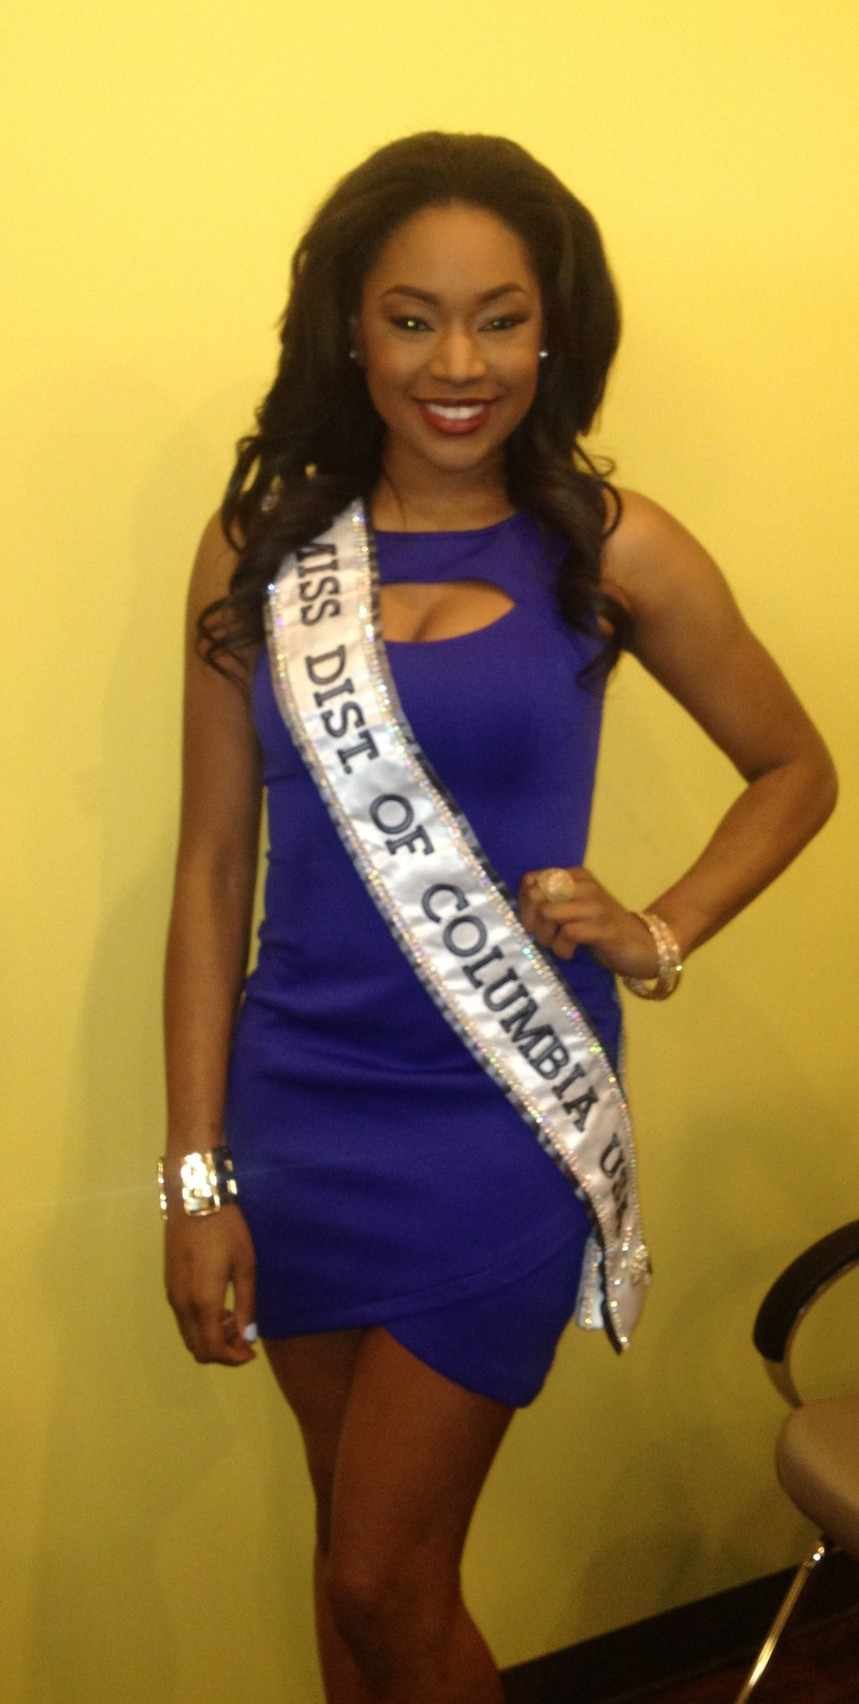 Ciera Butts, Miss District of Columbia 2014